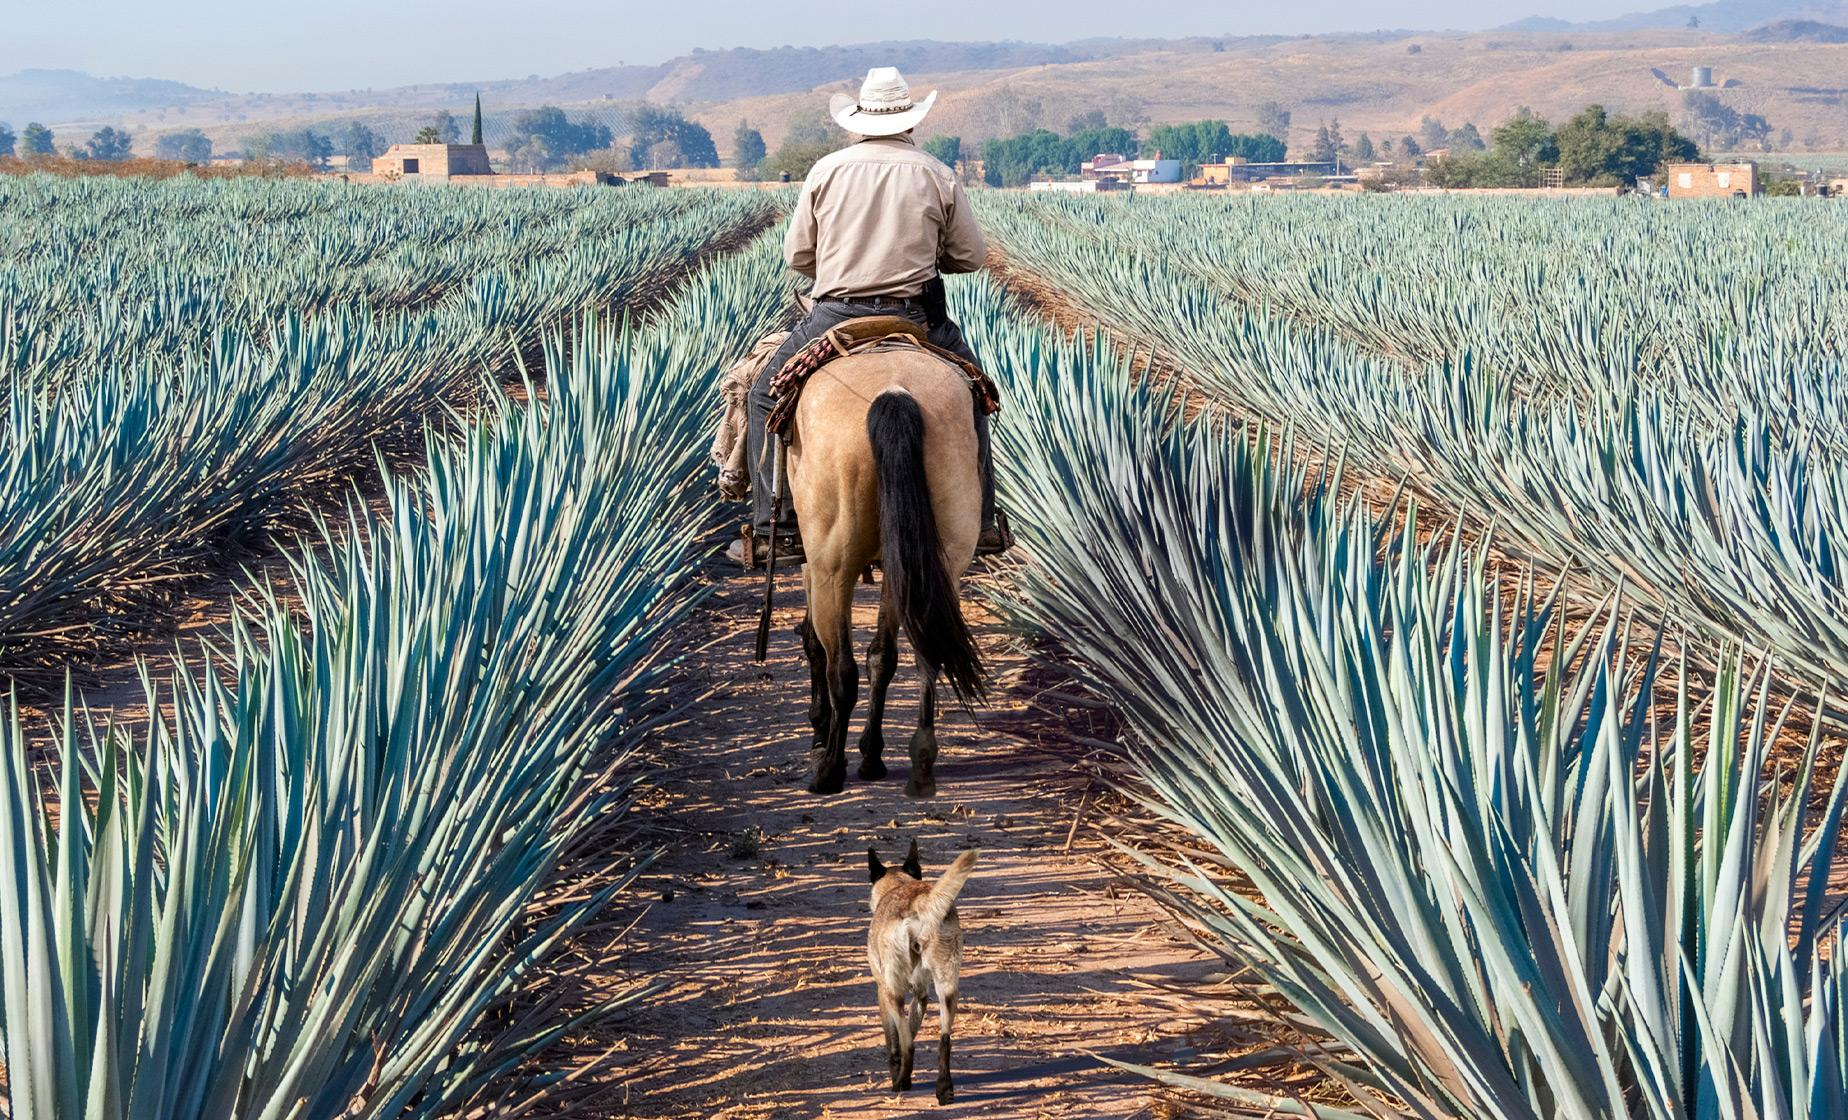 Private Tequila Factory and Local Villages